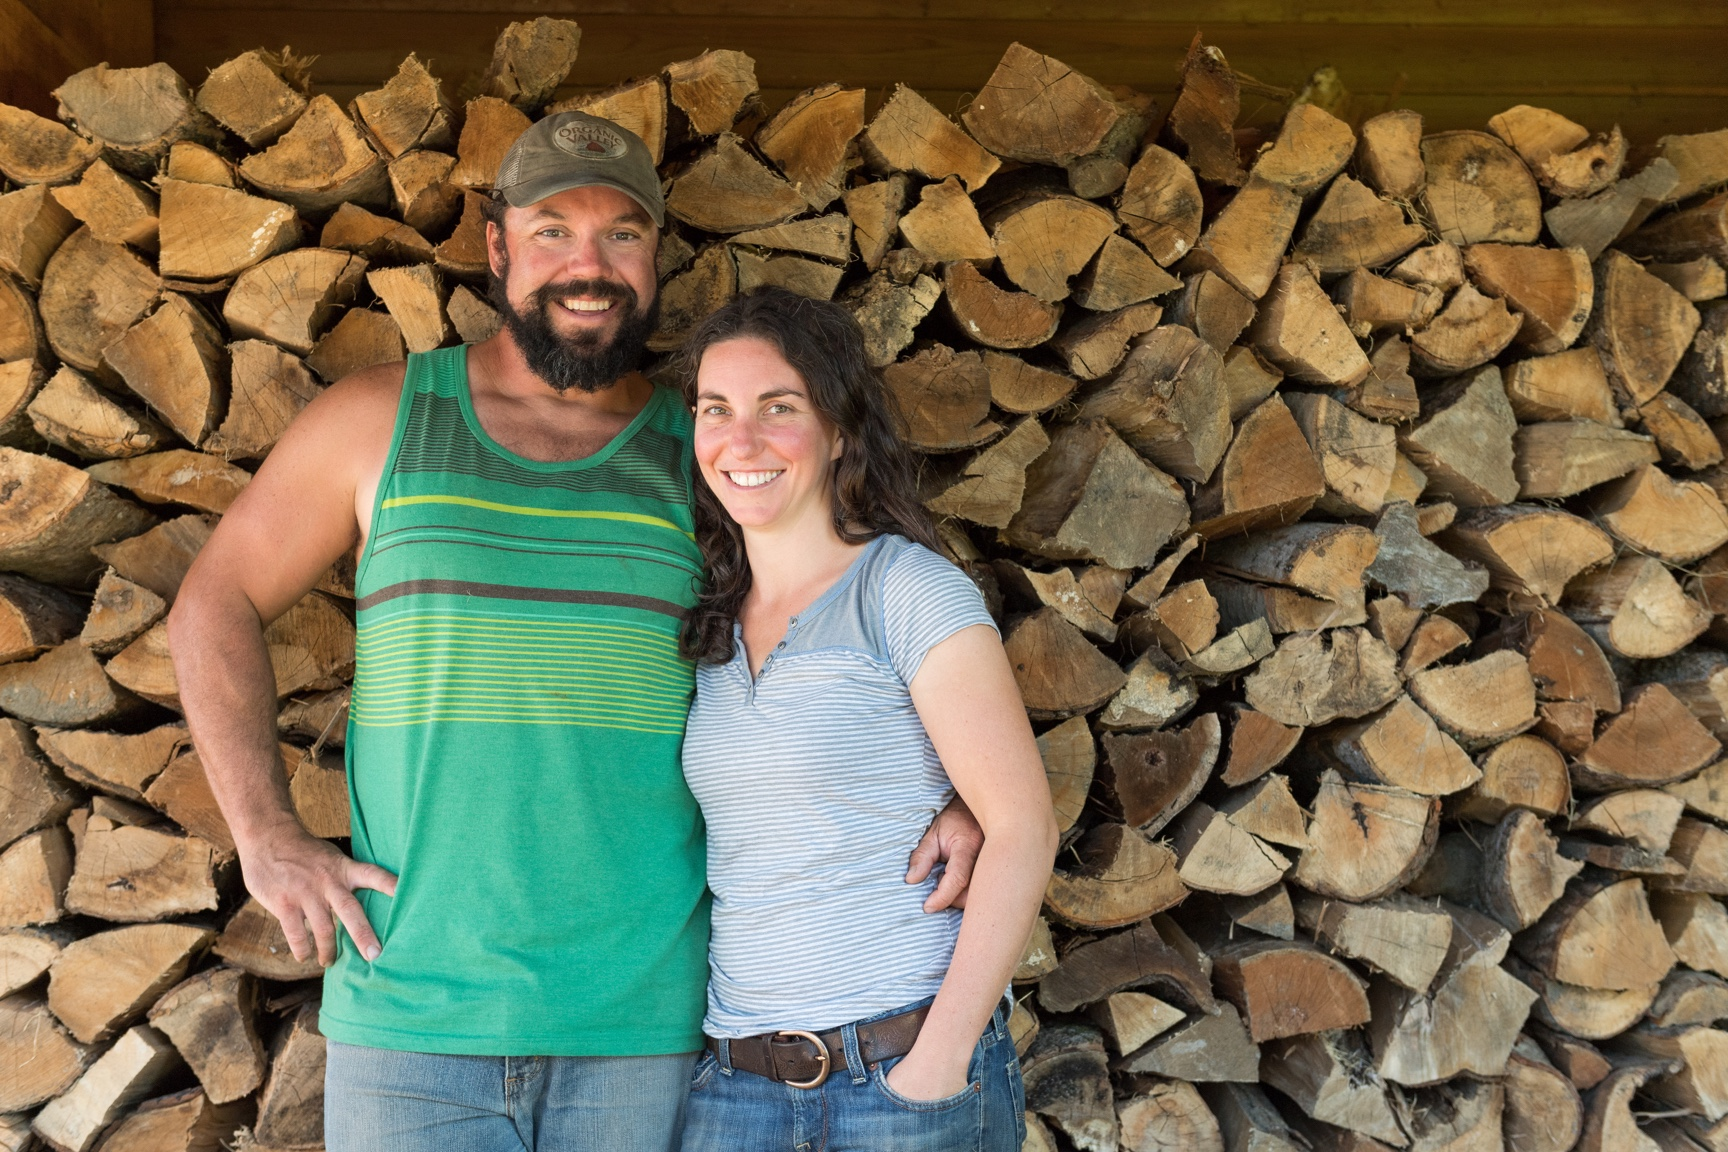 Tyler and Melanie smile at the camera while standing in front of a large stack of firewood.